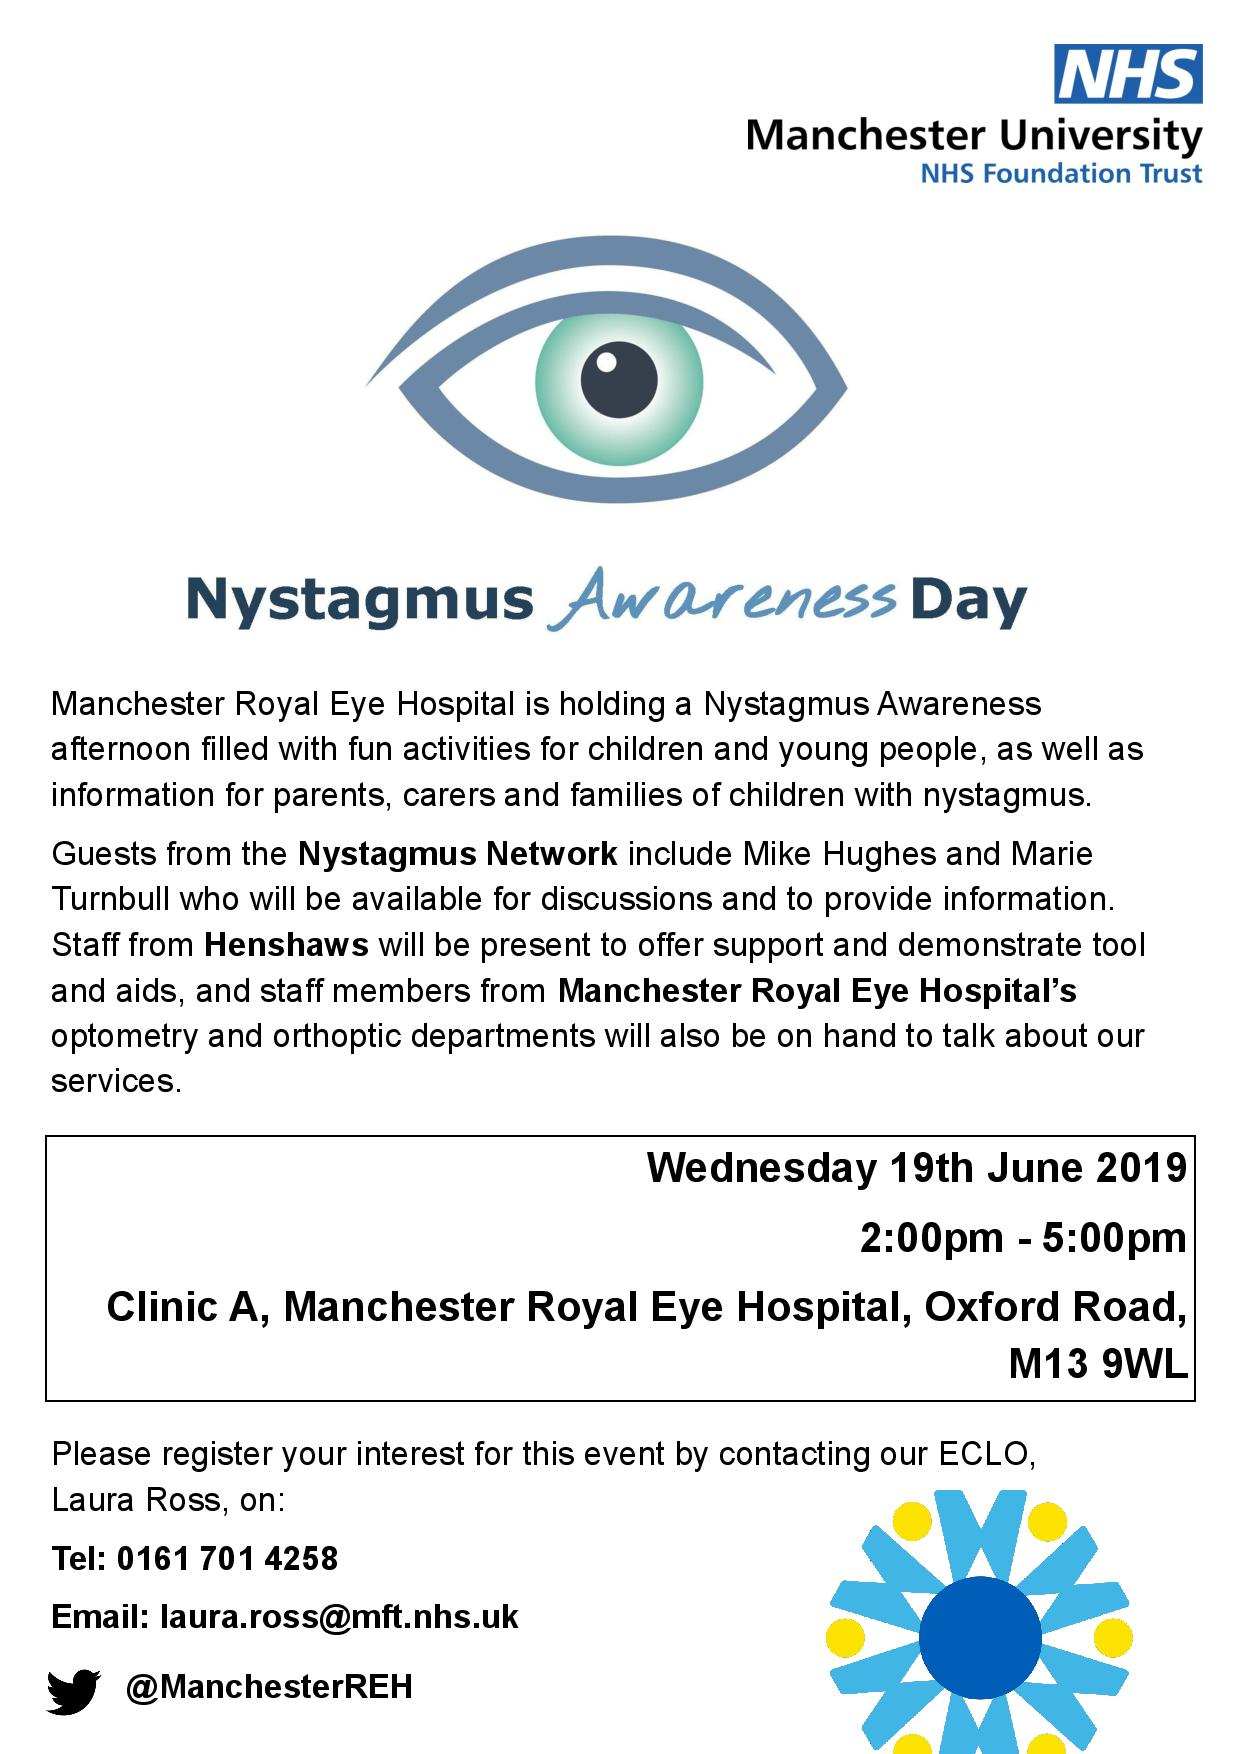 Our Manchester Event